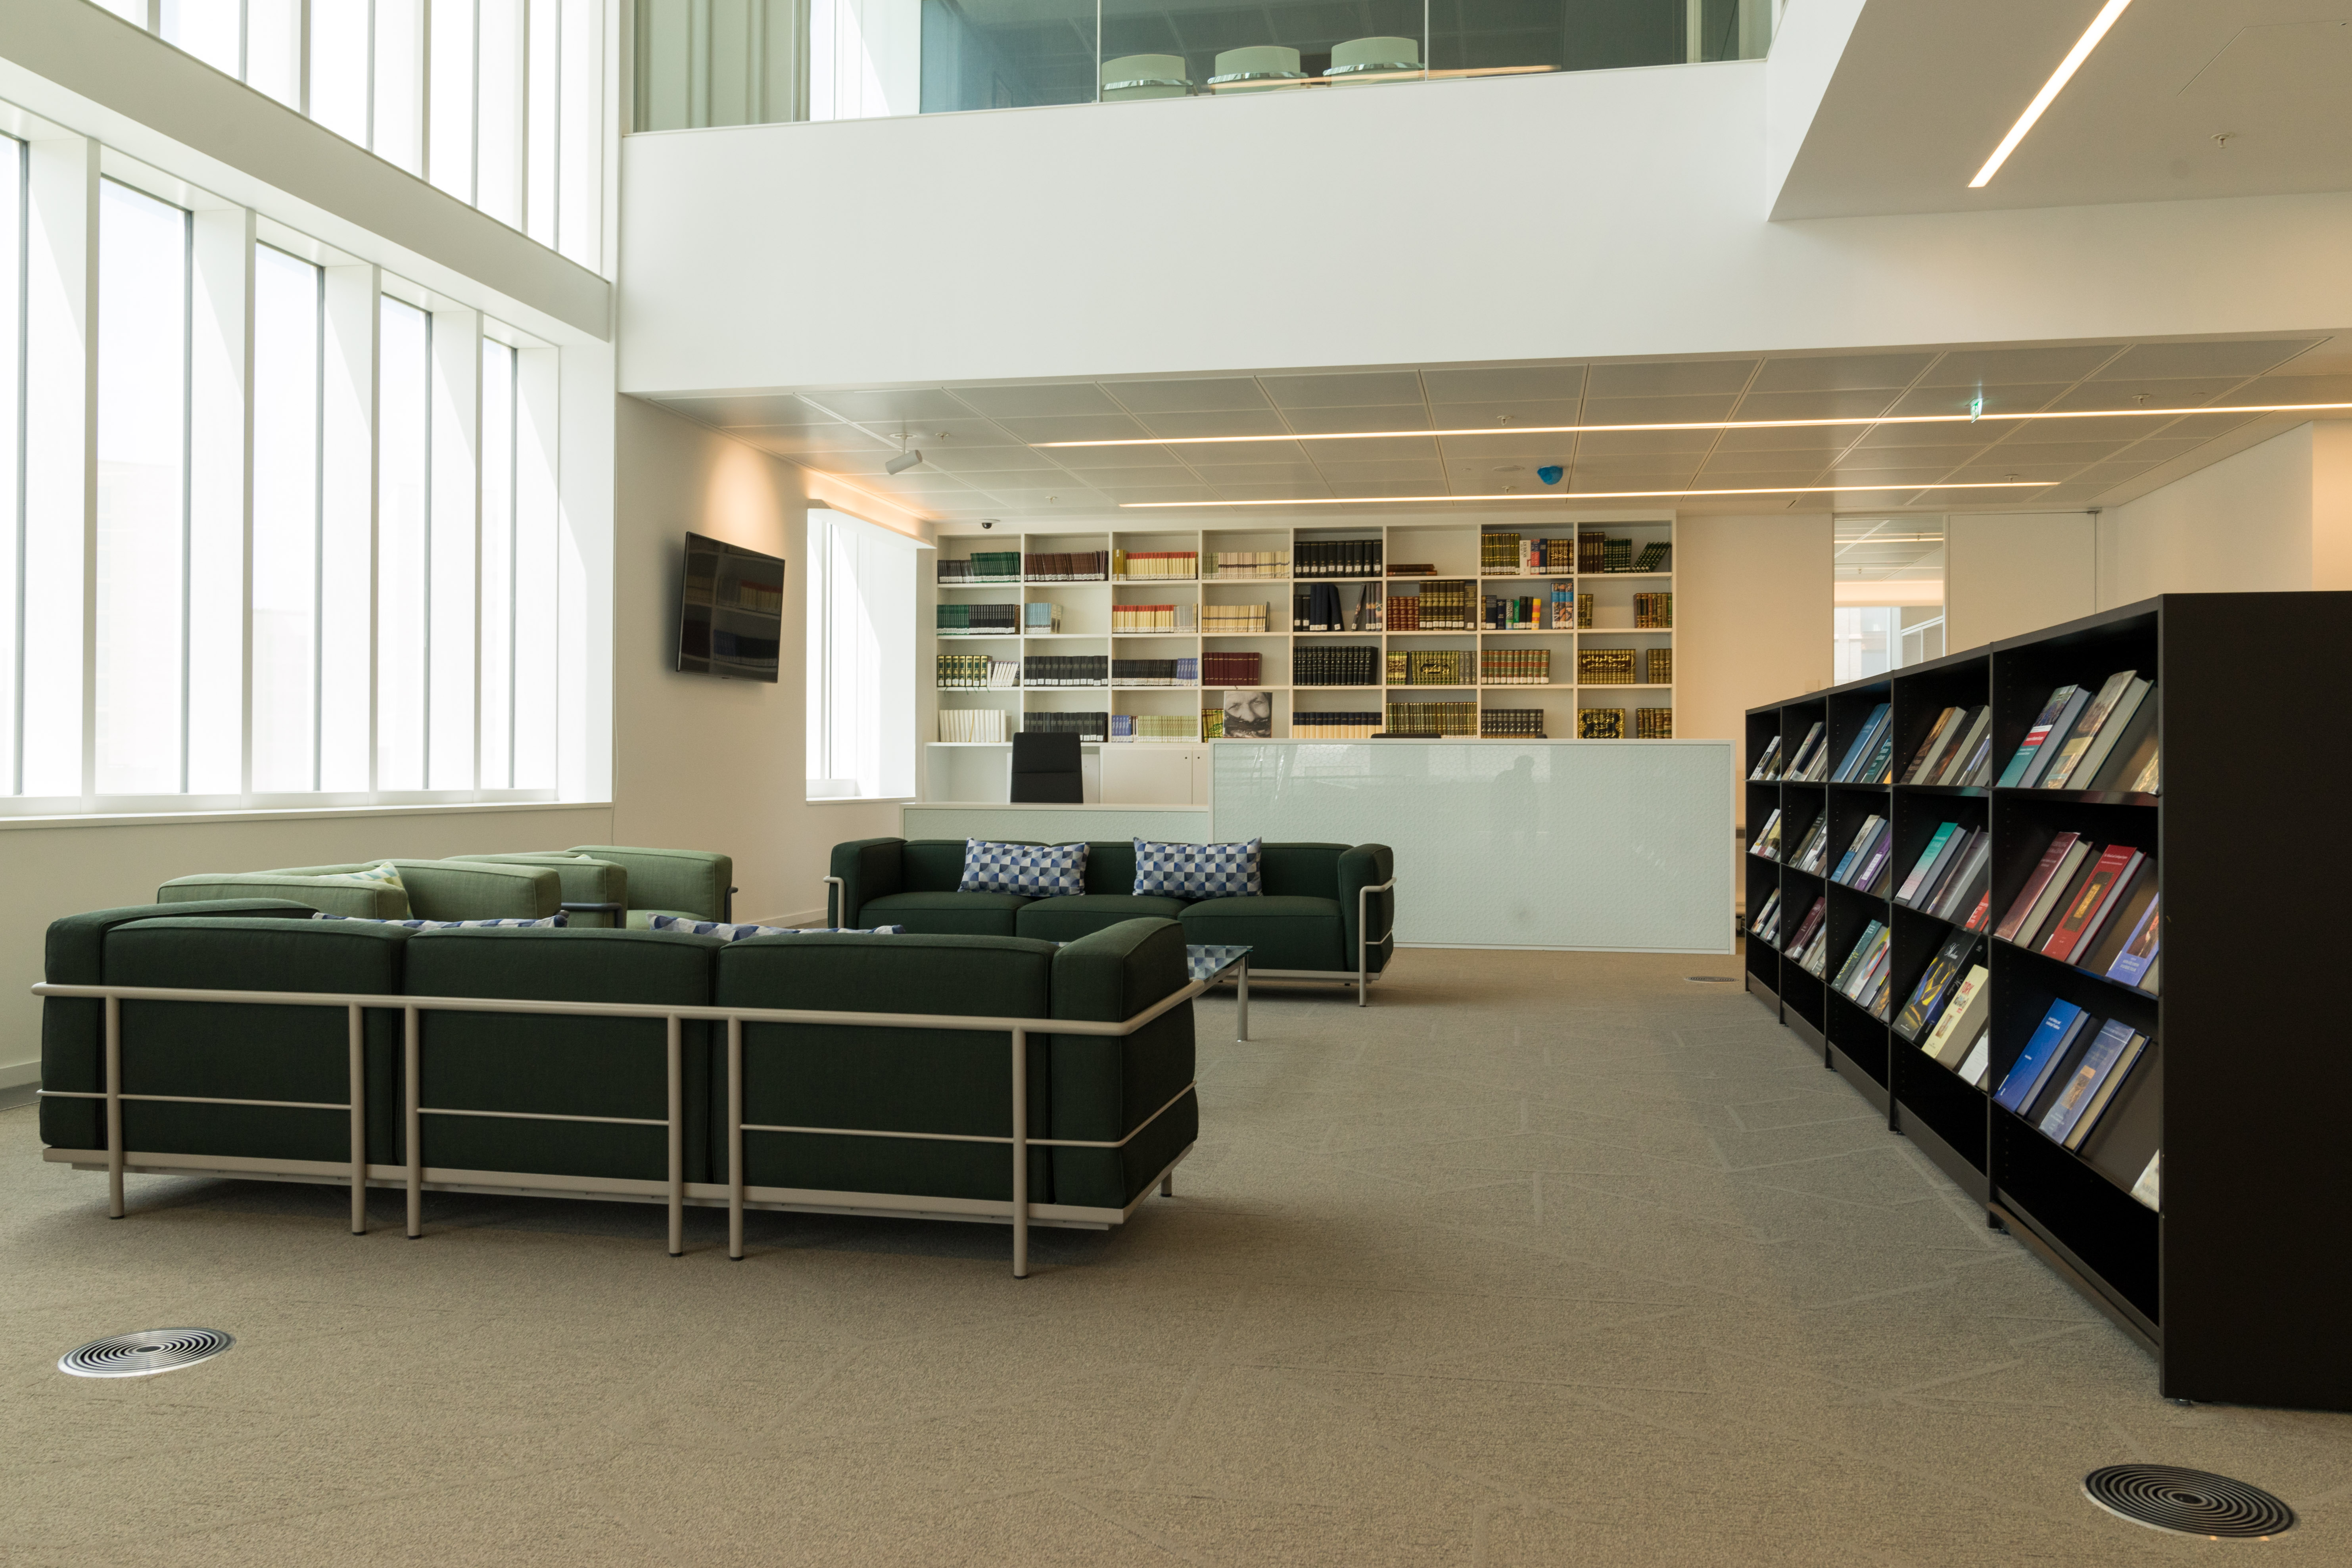 The Aga Khan Library, London